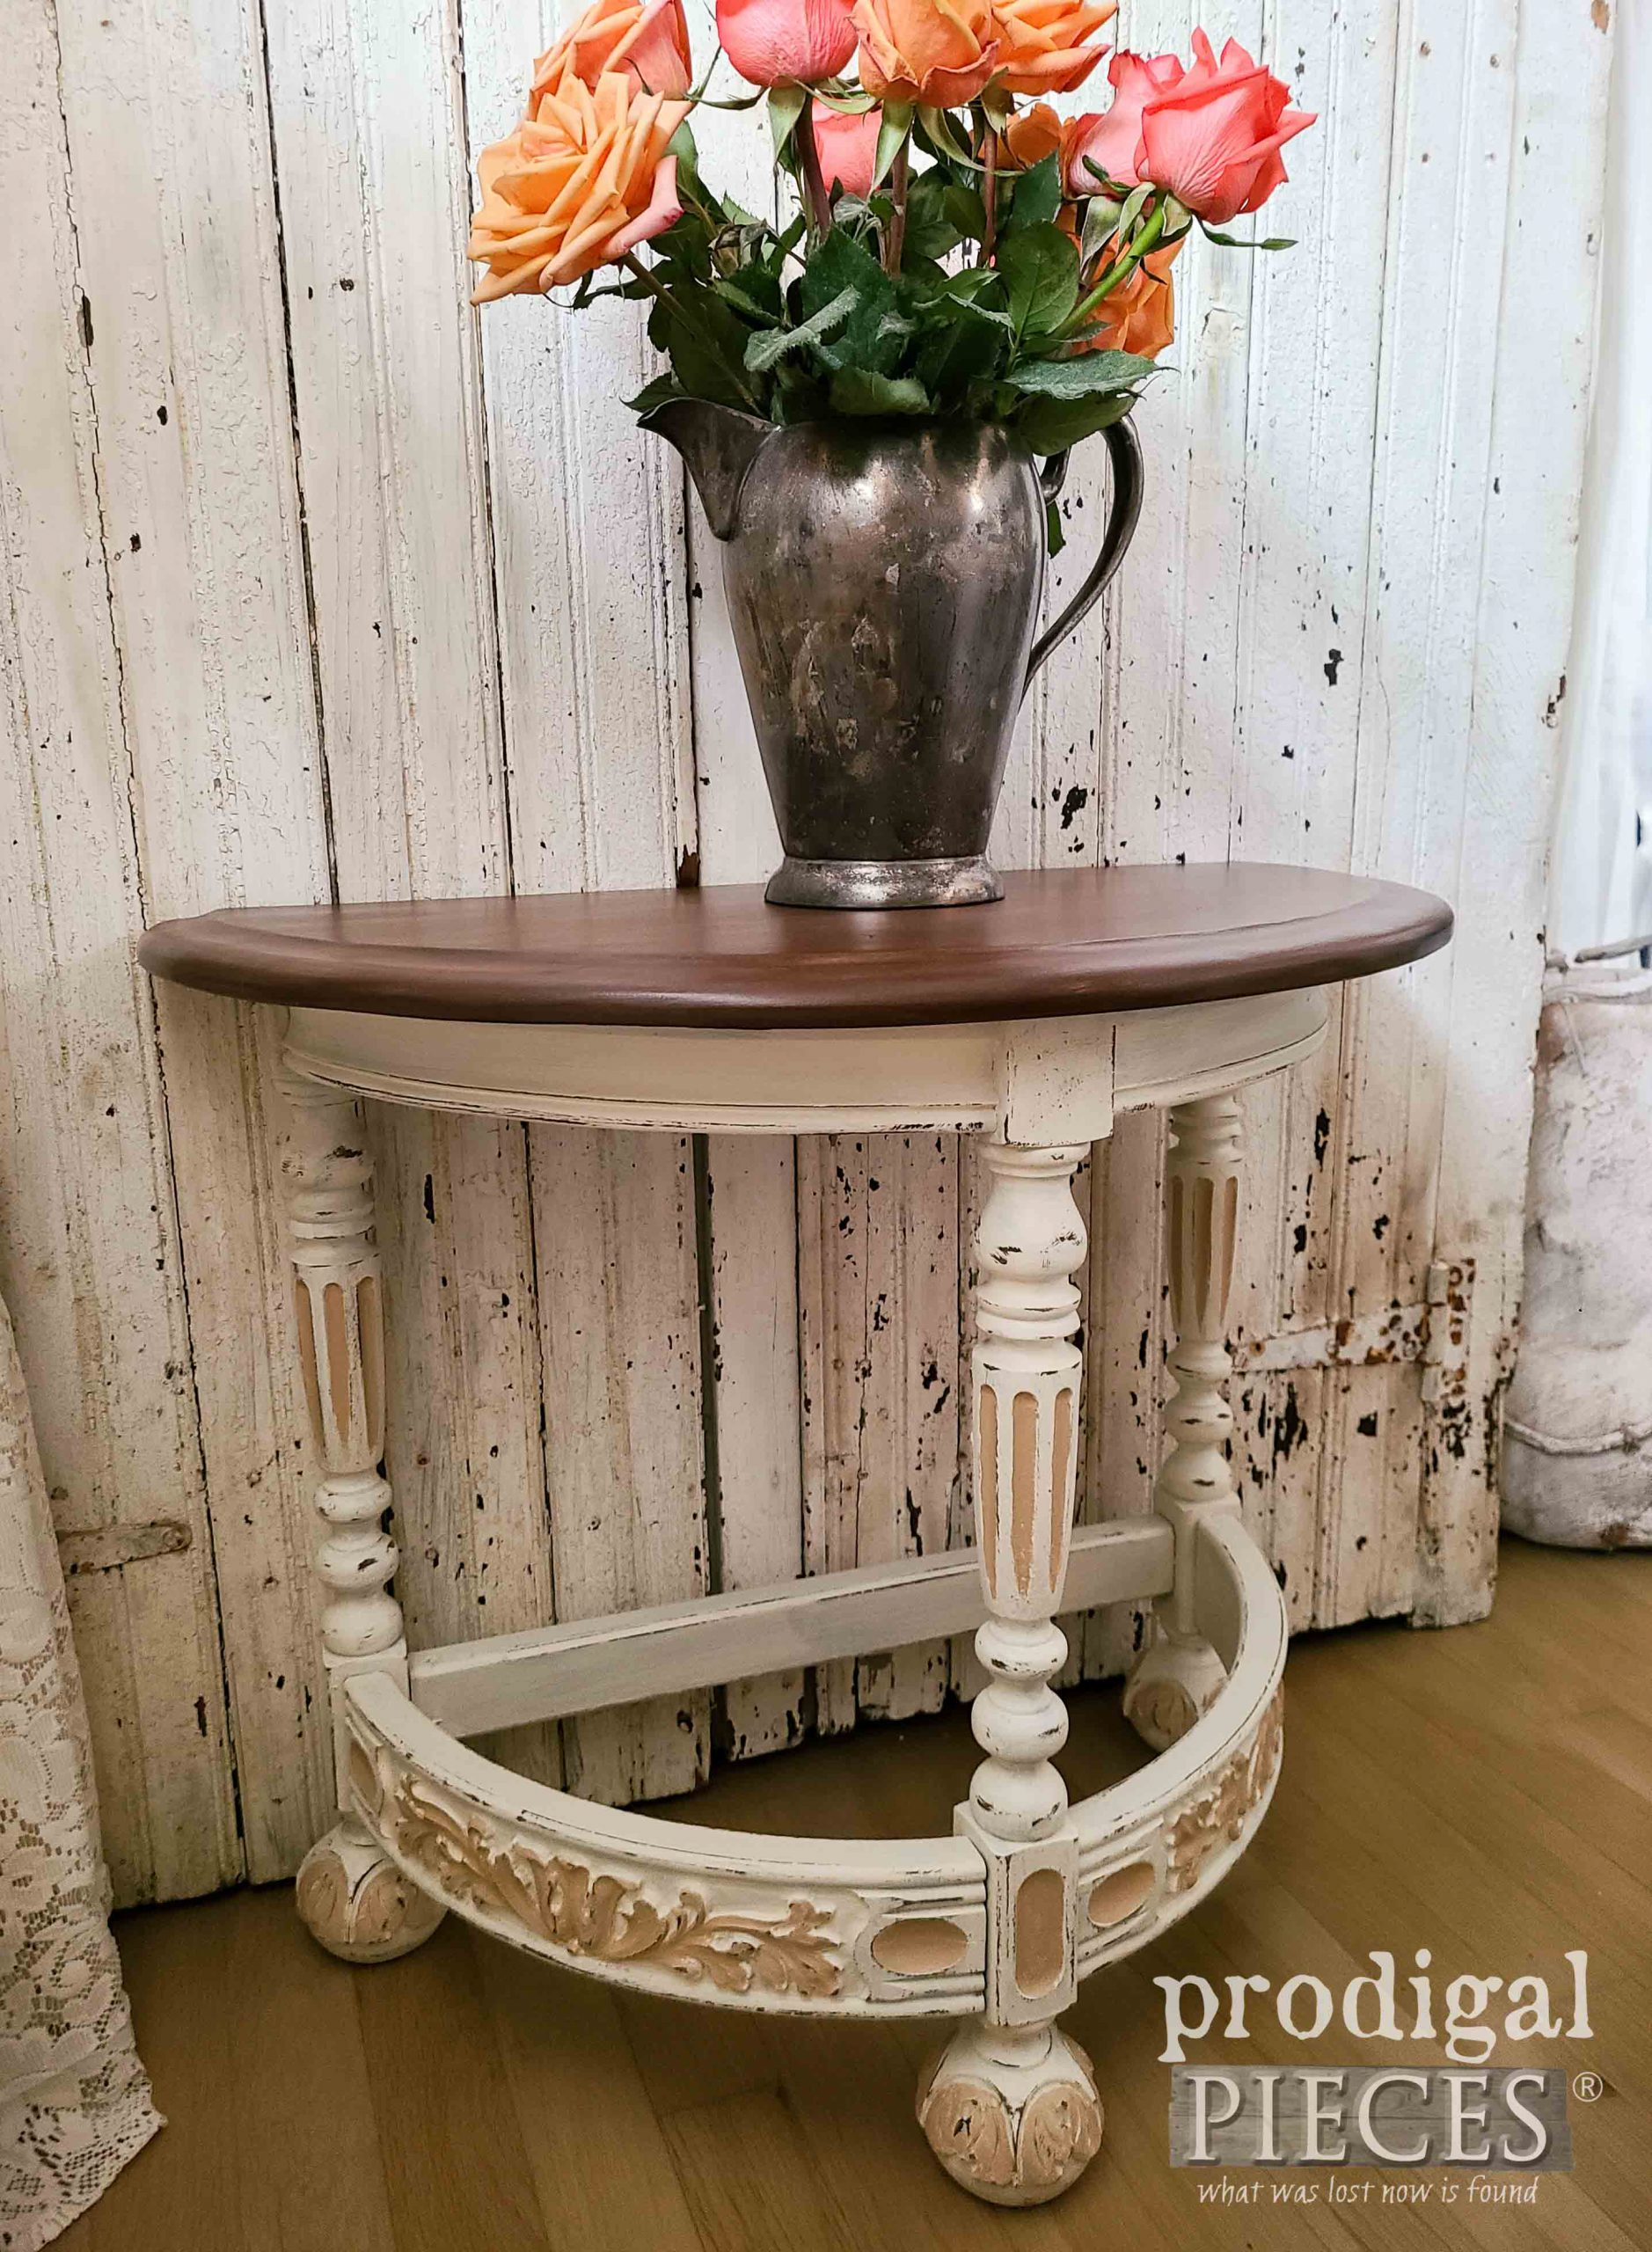 Antique Side Table with Half Round Top by Larissa of Prodigal Pieces | prodigalpieces.com #prodigalpieces #antique